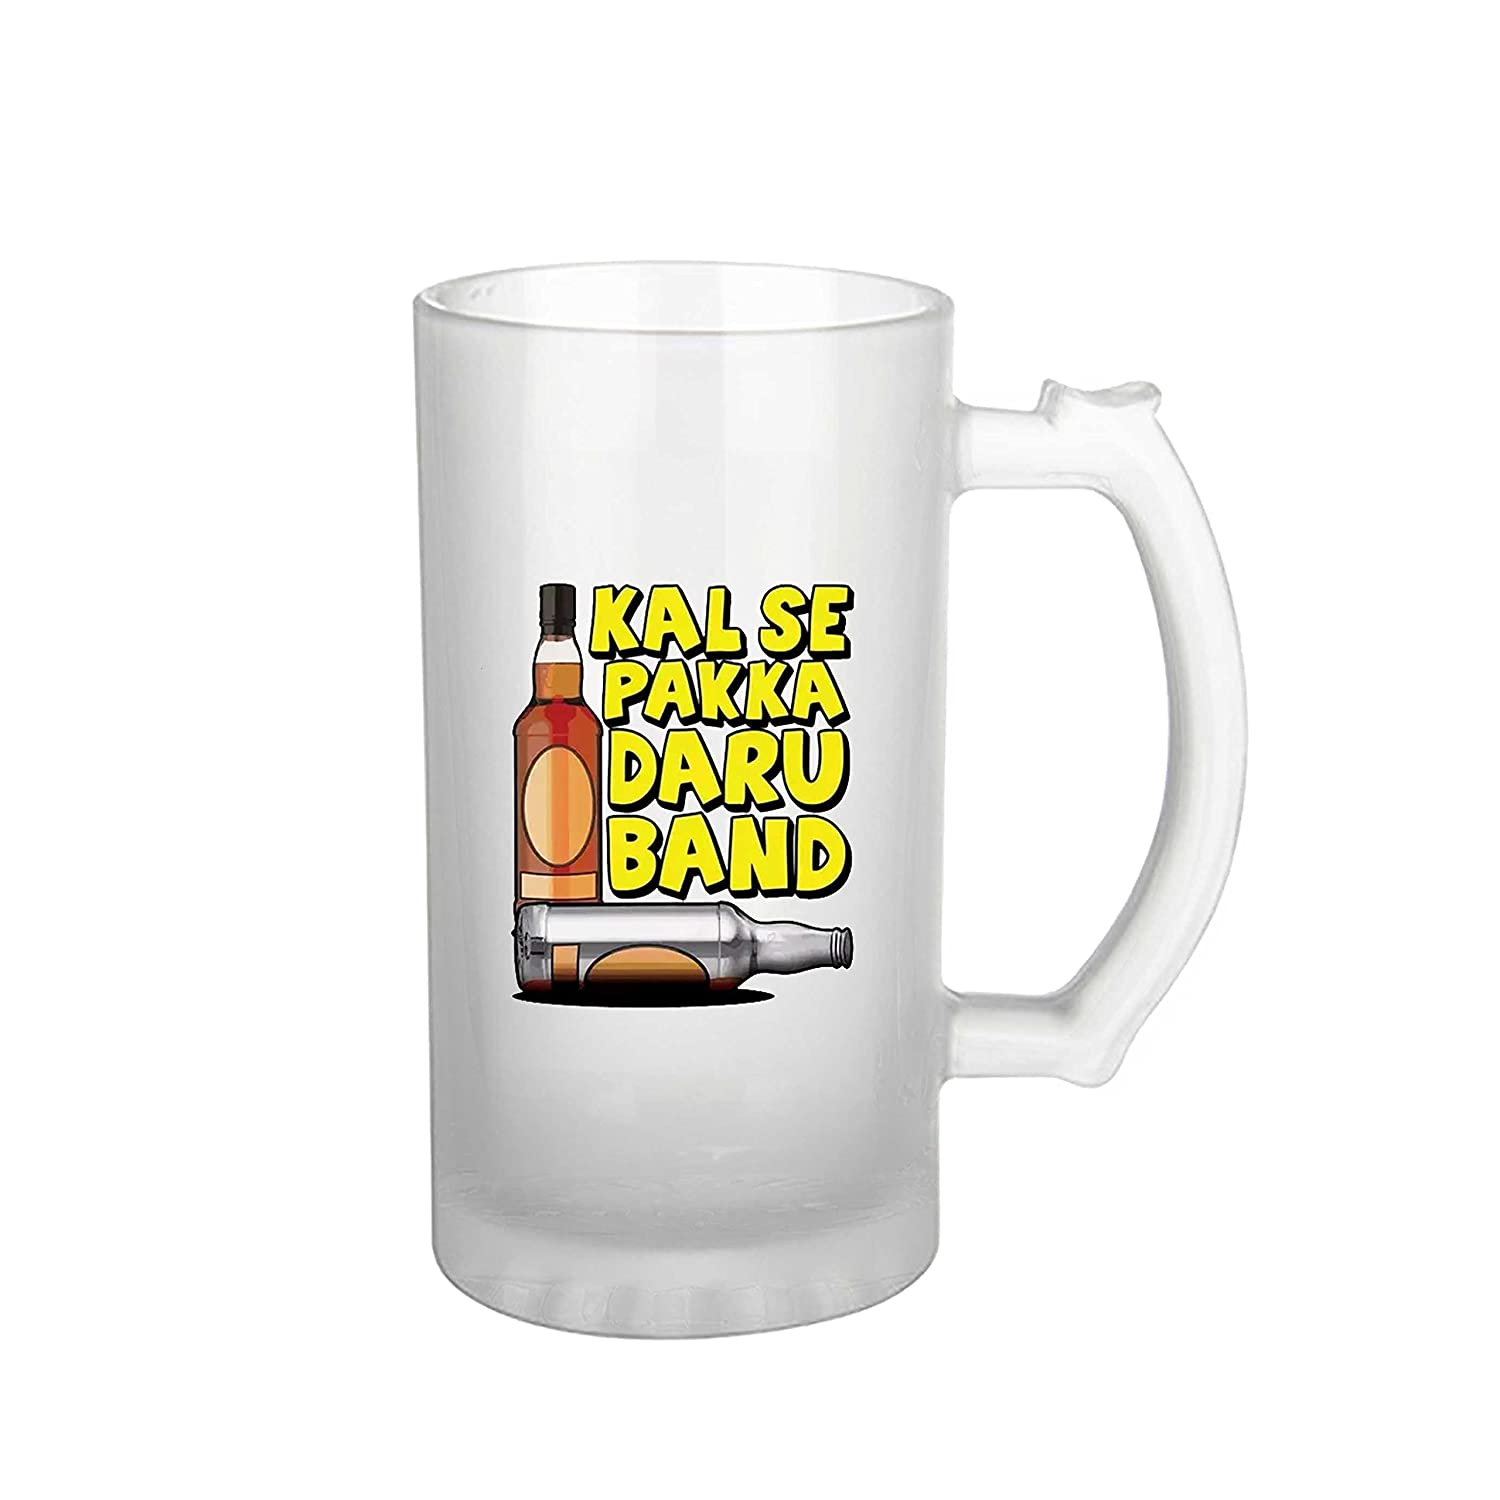 1989d9095 Buy iKraft Kal Se Pakka Daru Band Quote Printed Beer Mug- 16 oz Frosted  Beer Mug for Gifting Online at Low Prices in India - Amazon.in